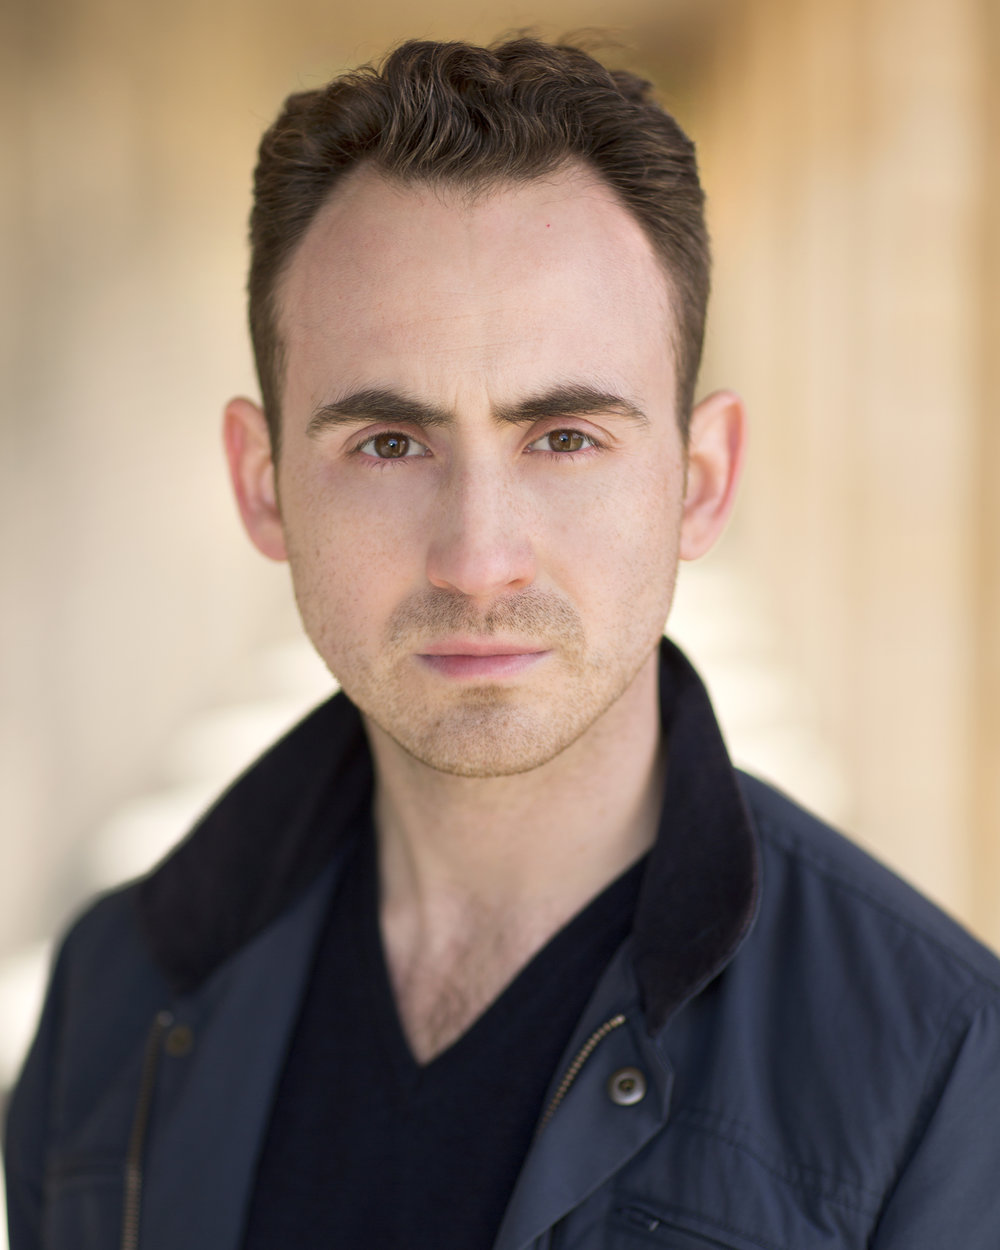 Adam Dougal   Adam is represented by Premier Artists, you can view his casting profile via the following link:   http://www.premierartistsni.co.uk/artists/adam-dougal/